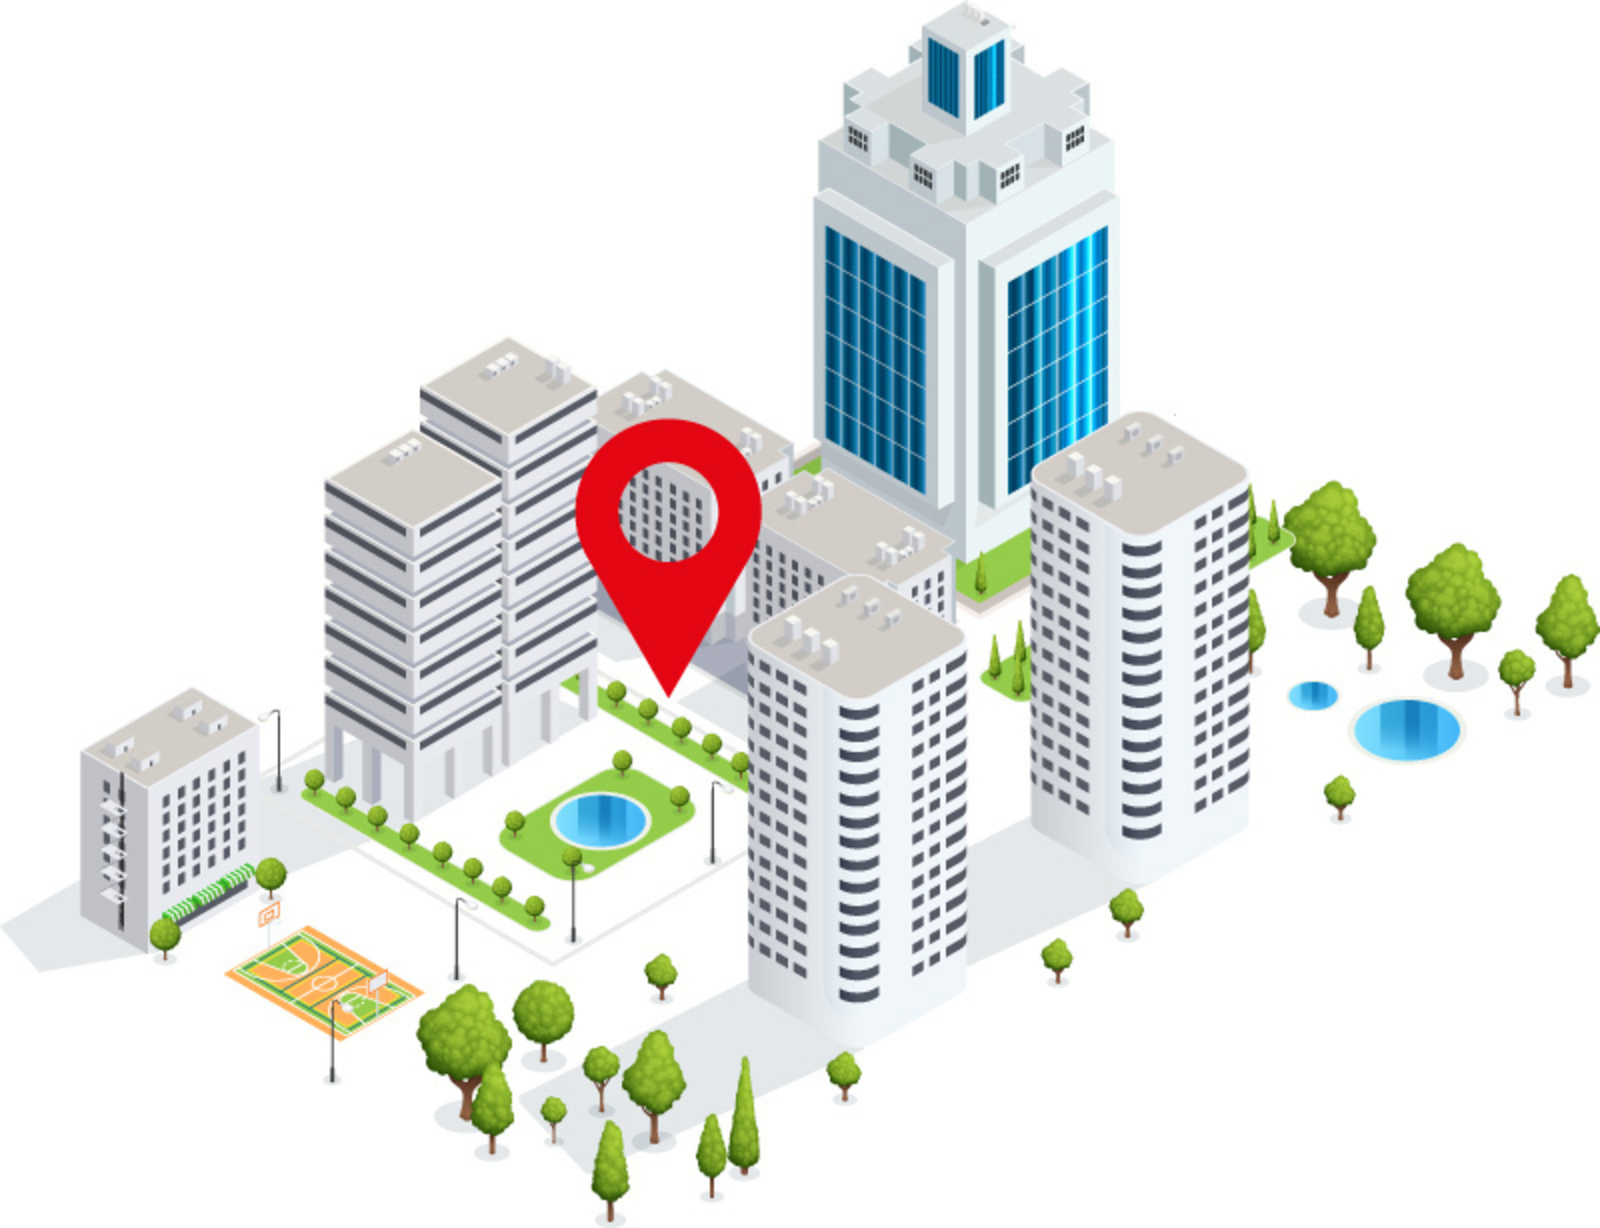 Stylized city with a red pin in the center